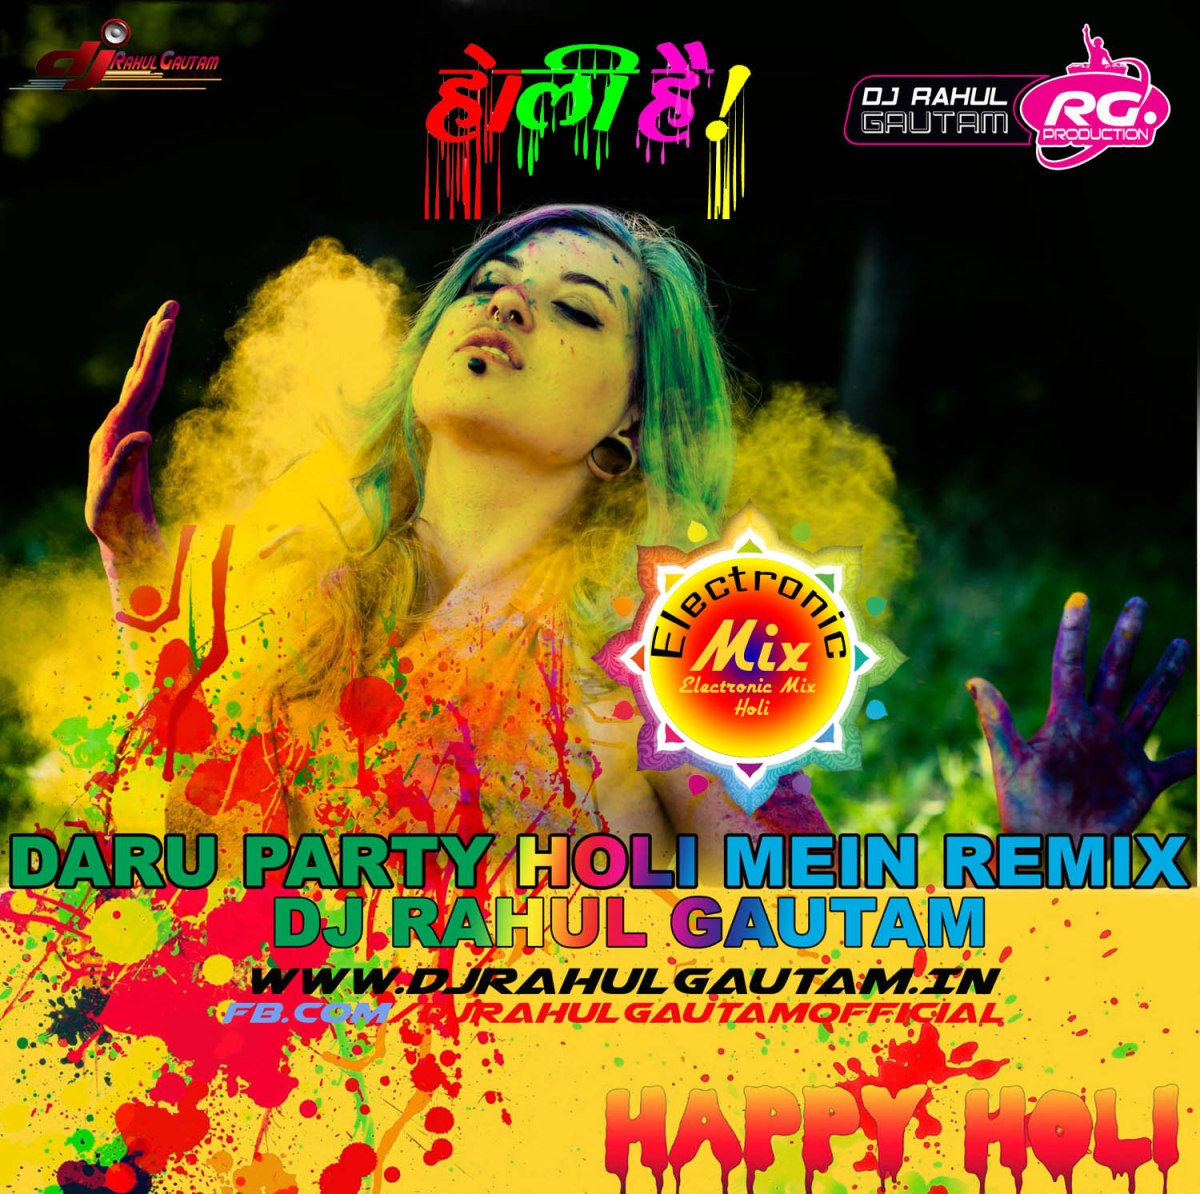 Download Song Daroo Party By Pagalworld: Daru Party Holi Mein BhojPuri Remix By Dj Rahul Gautam